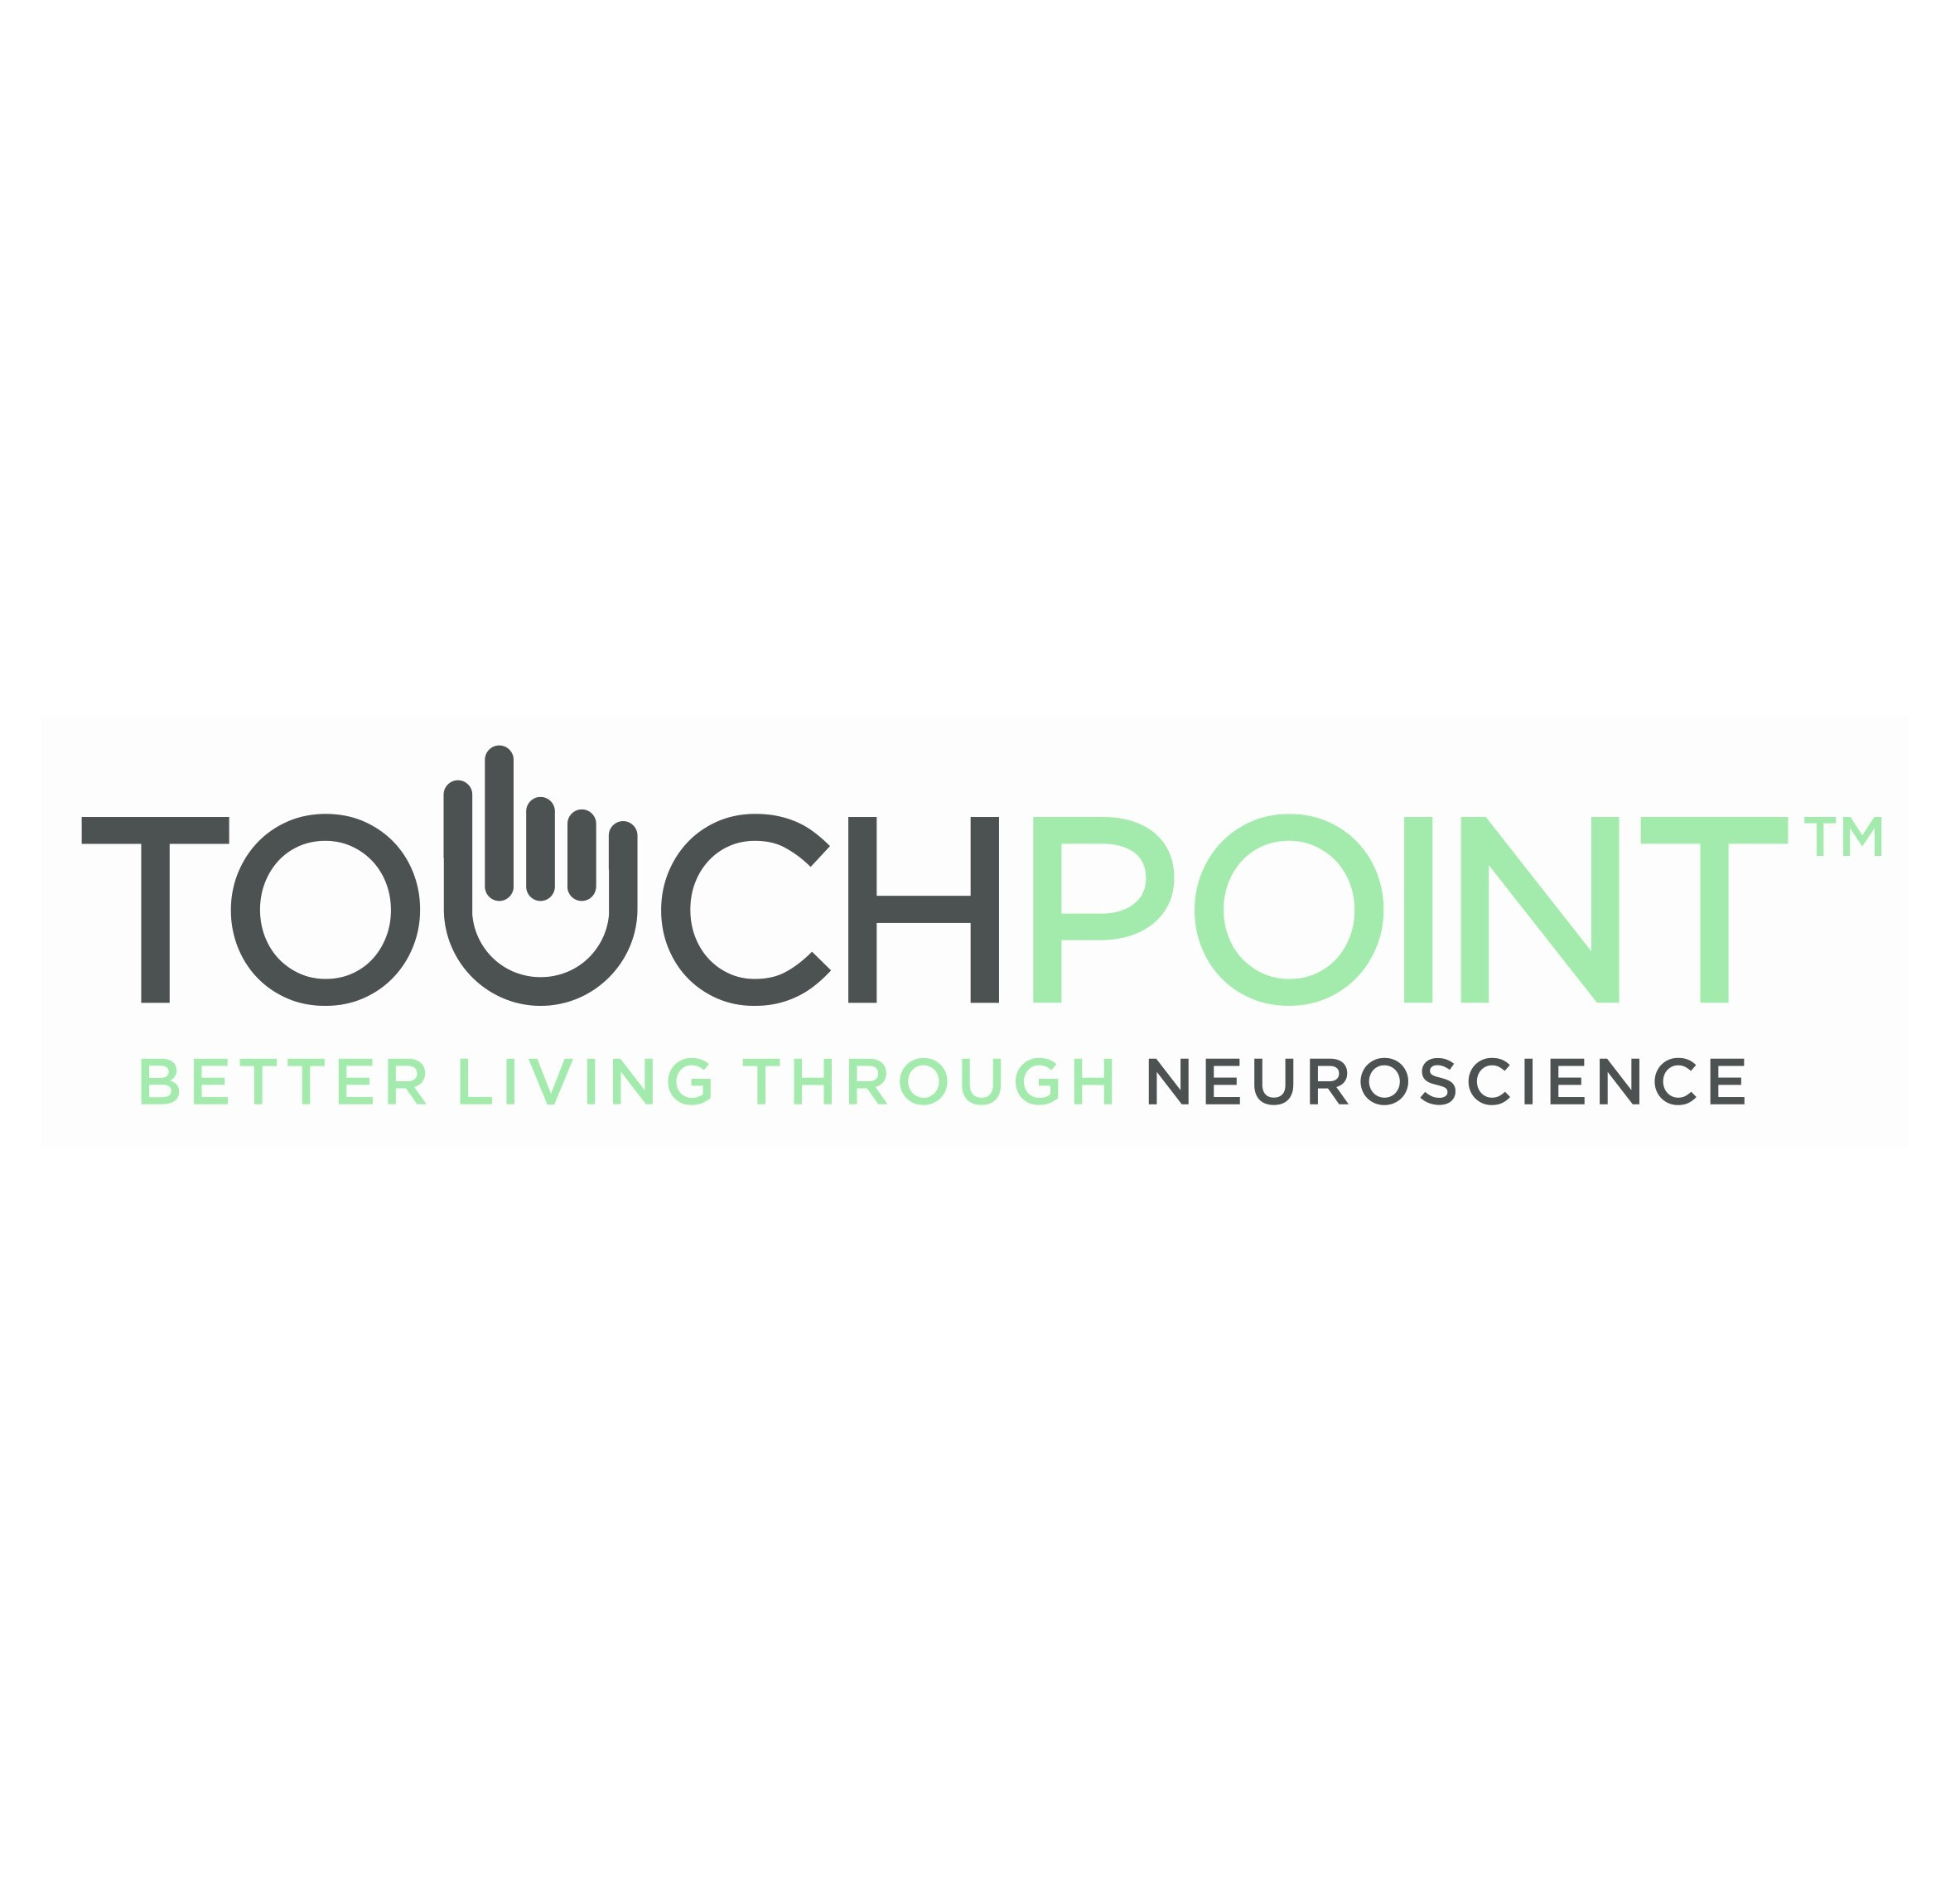 Touchpoint Europe